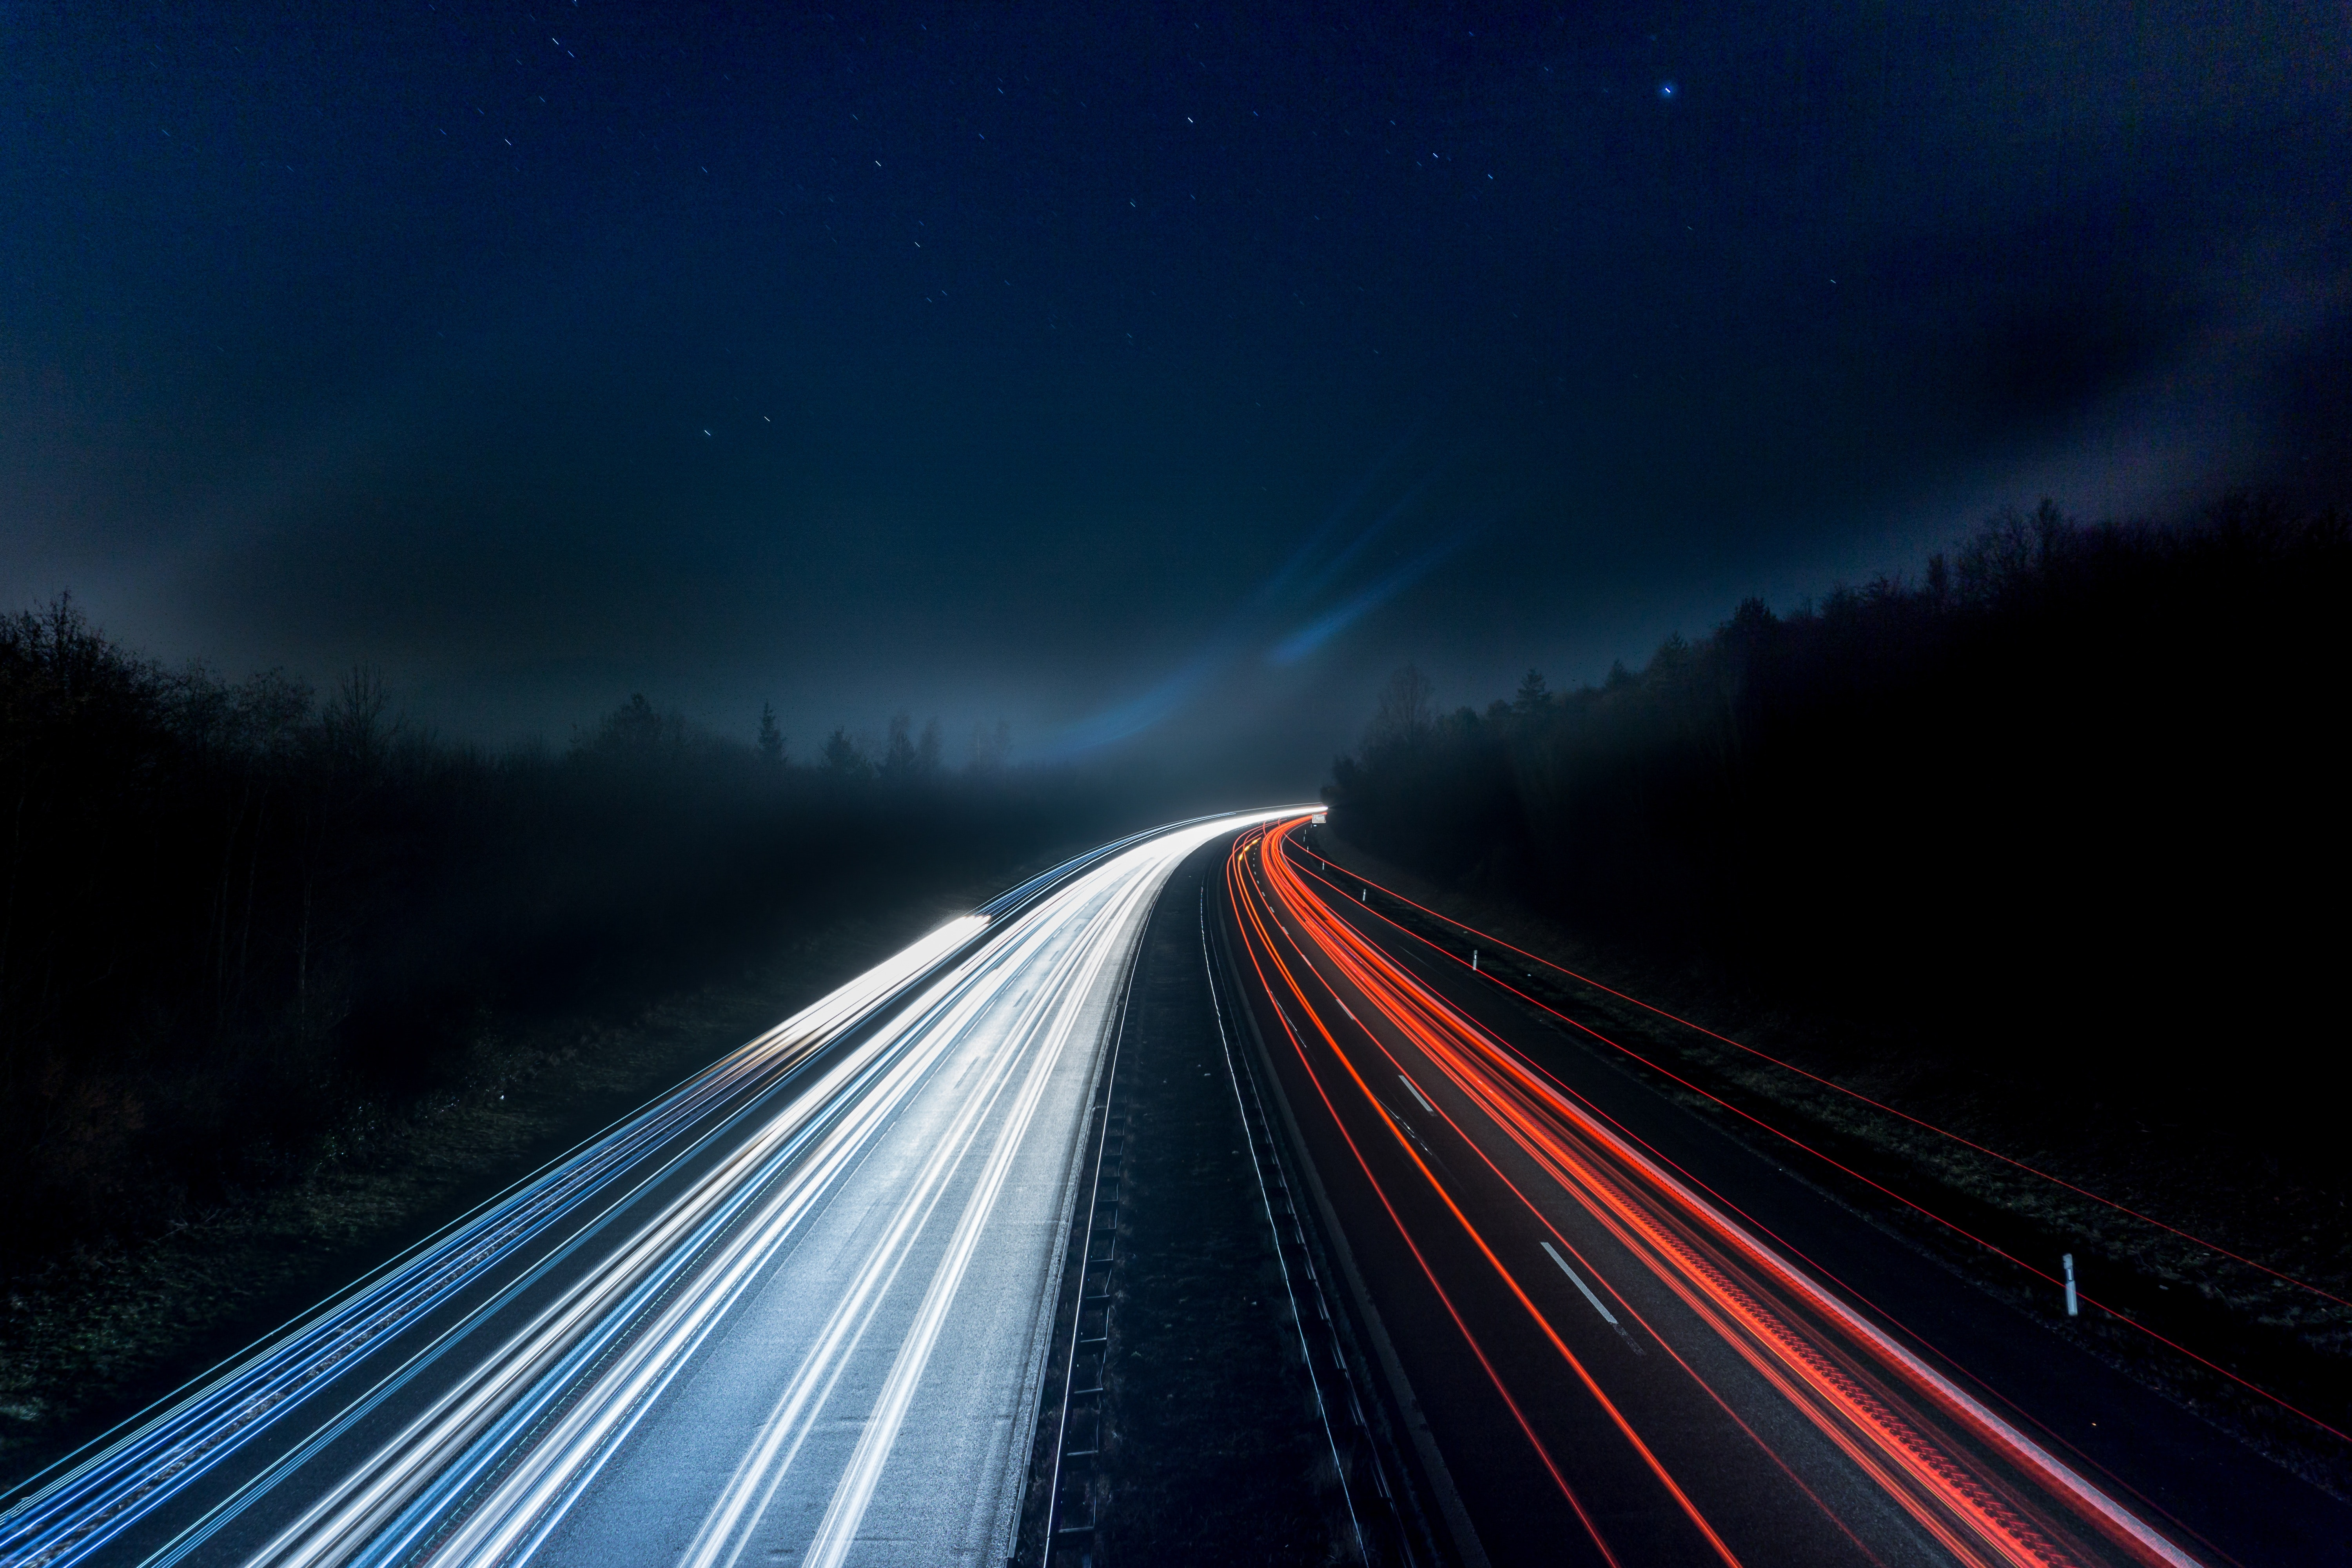 Donate Your Car >> Light Trails on Highway at Night · Free Stock Photo